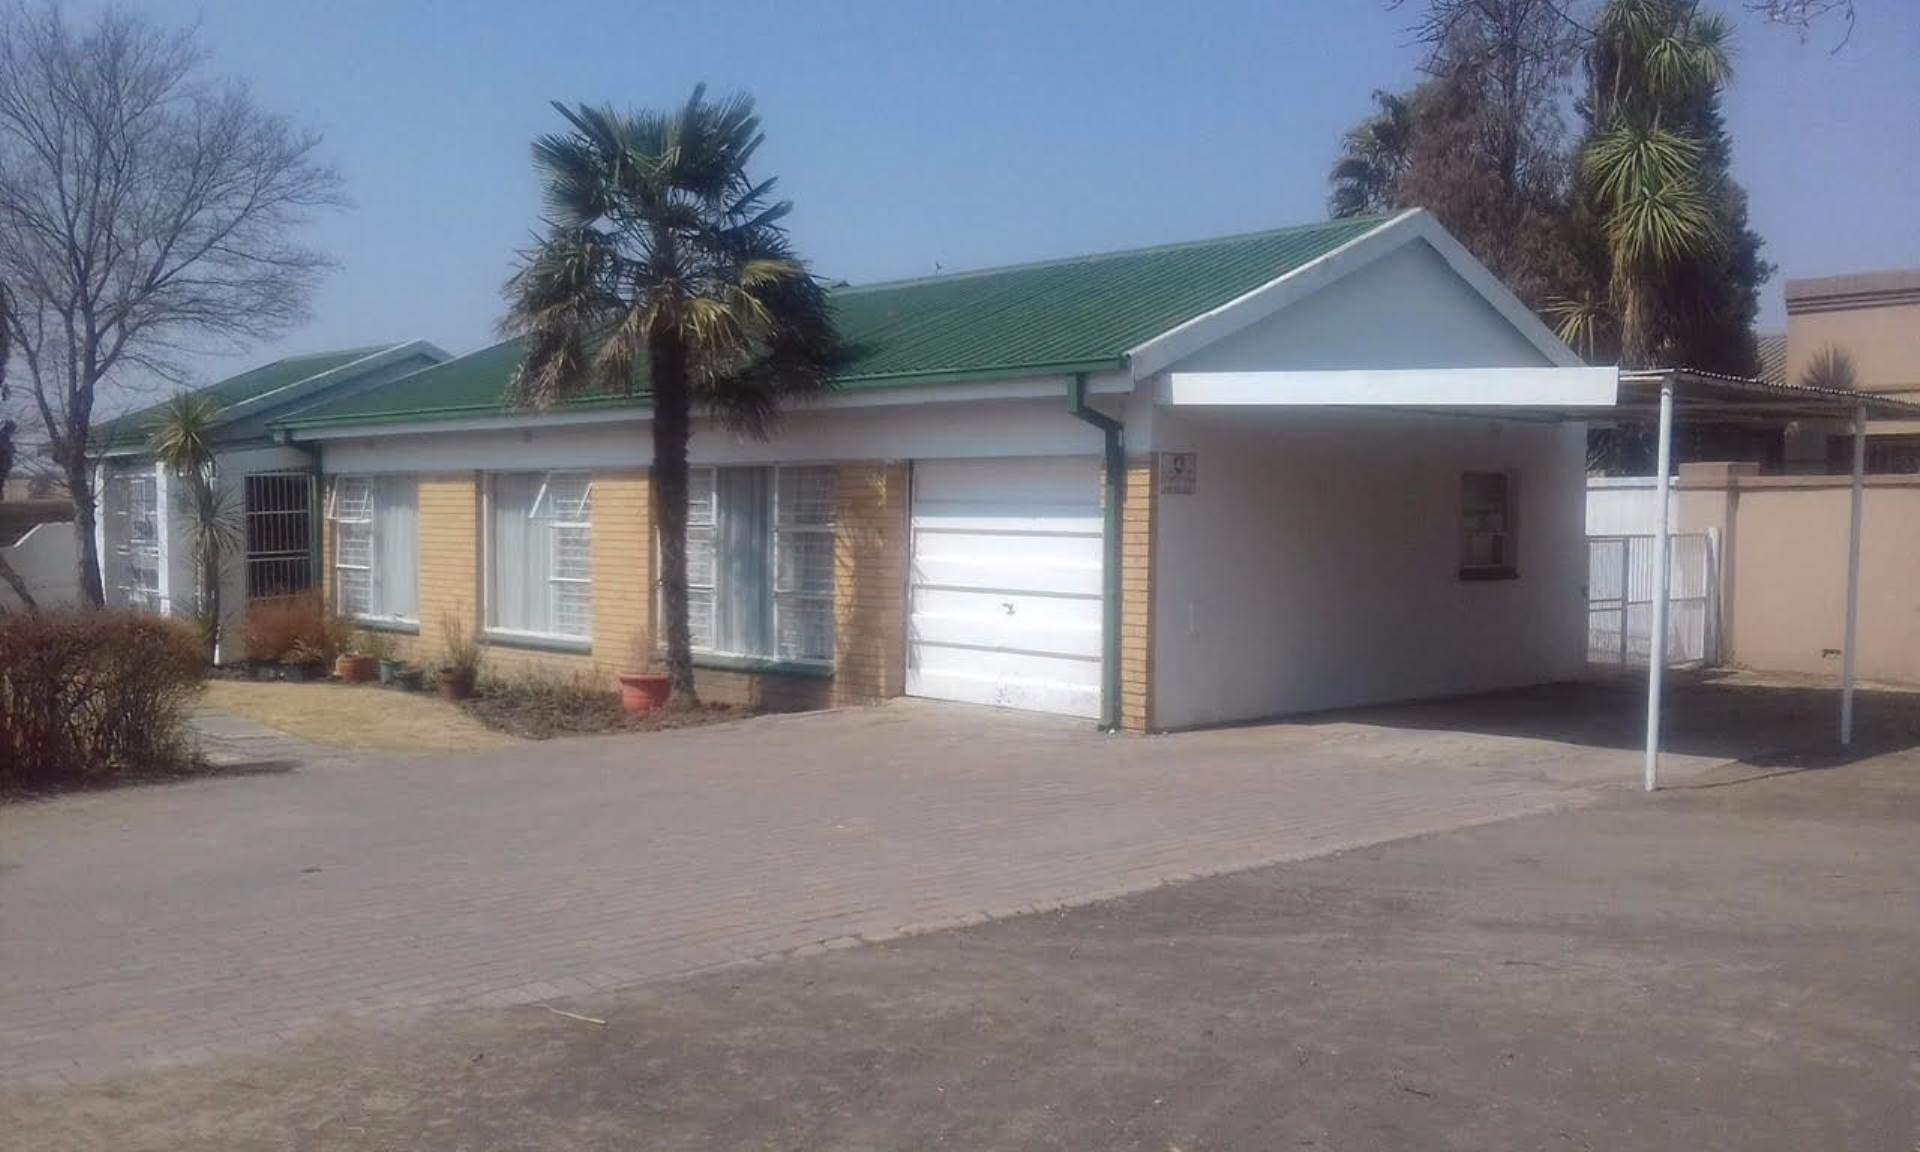 3 BedroomHouse For Sale In Heilbron